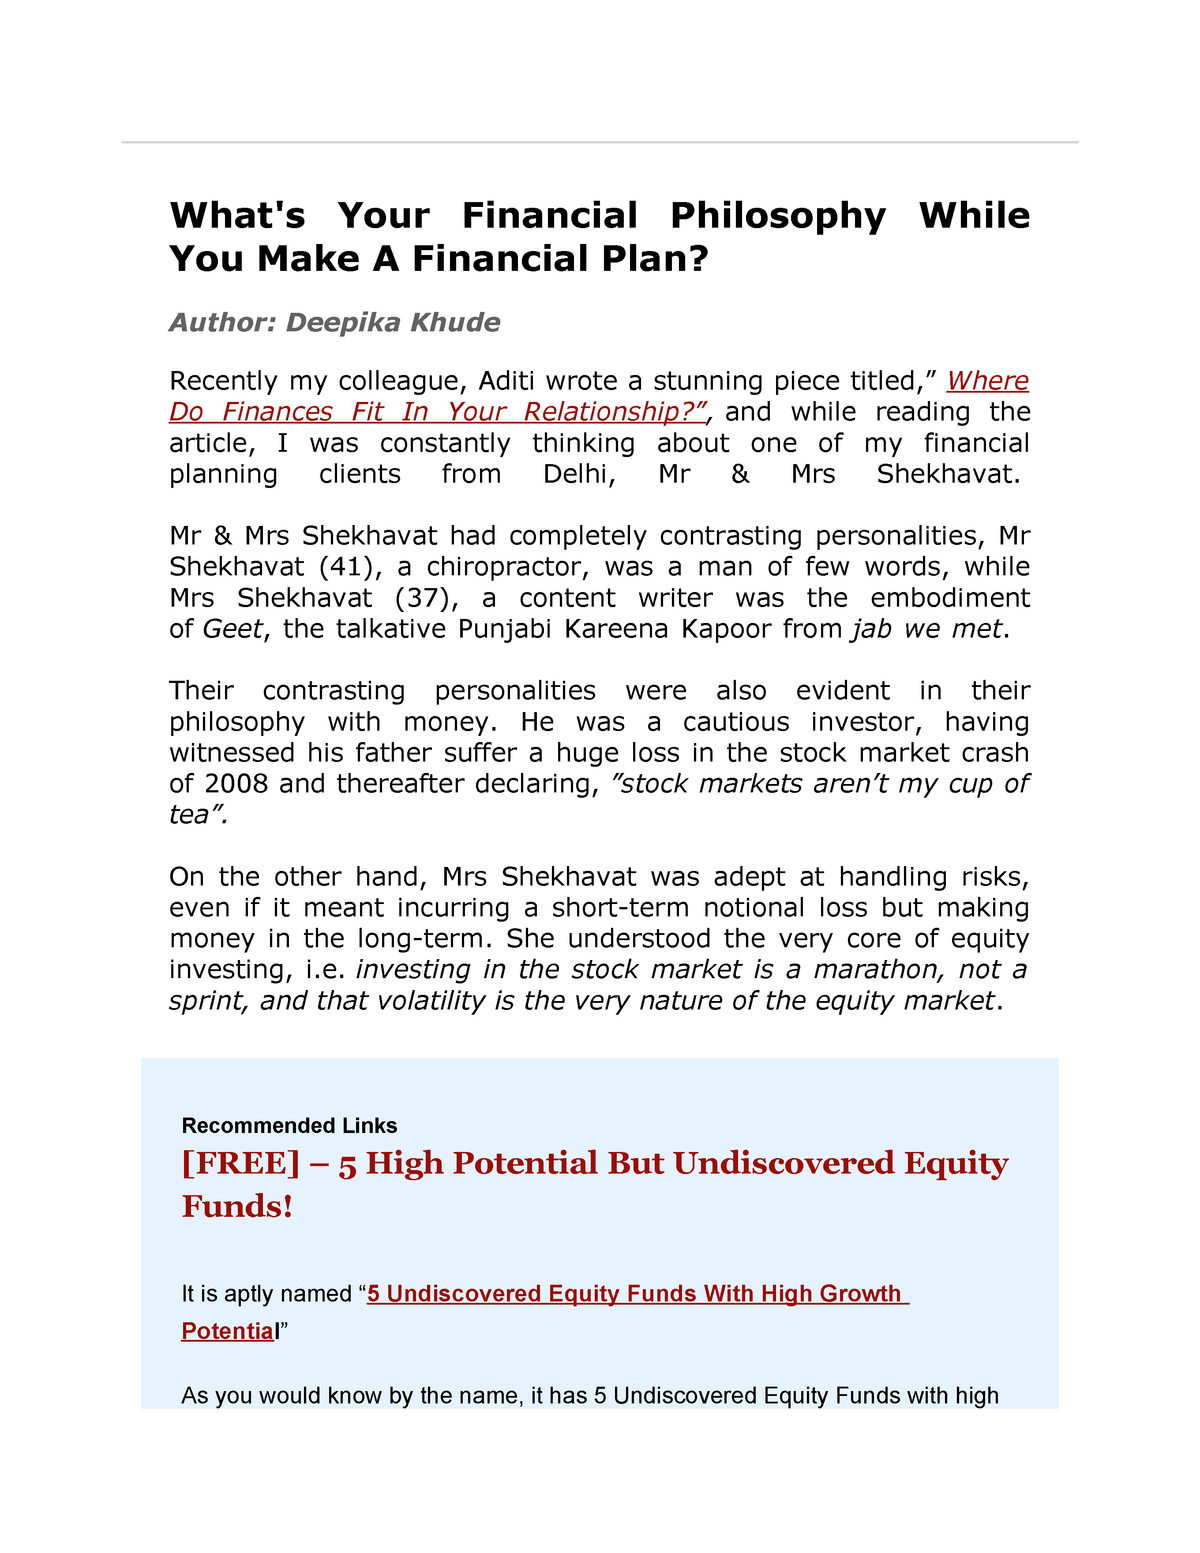 Case study in Investment - PA 504: Financial Management - StuDocu